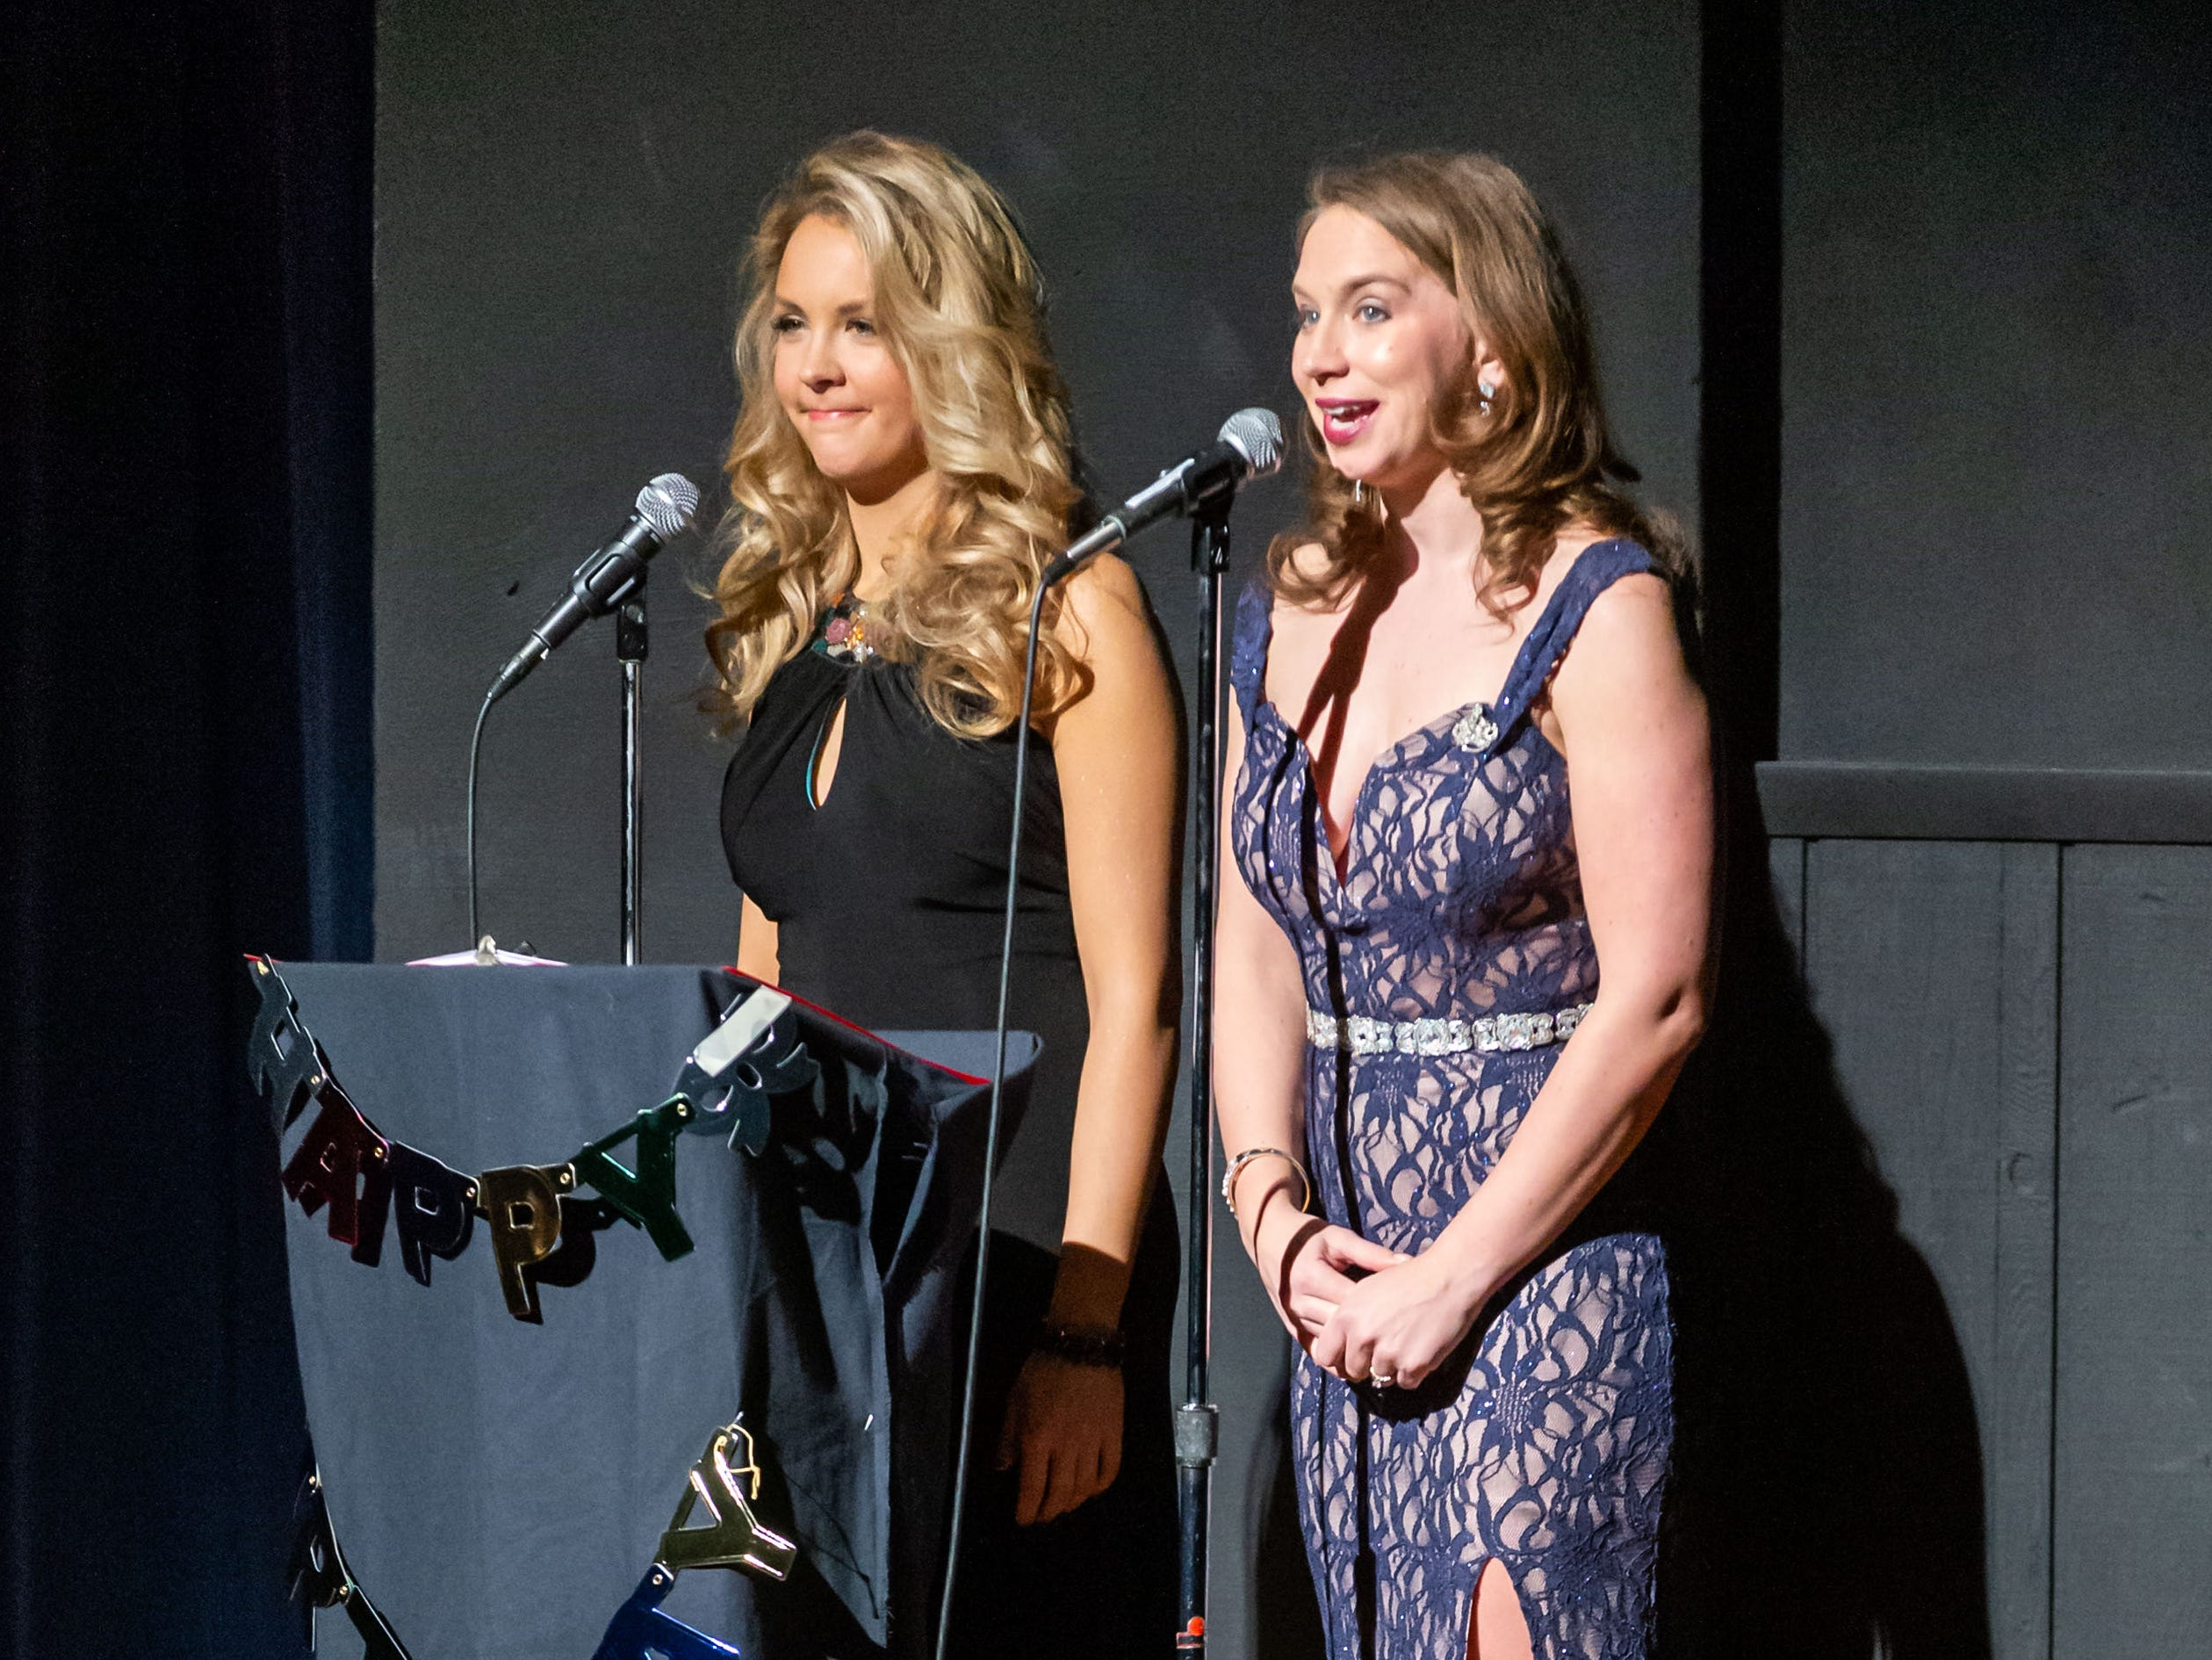 Emcee Gina Miliacca (left), Miss St. Francis 2016, and featured vocalist Elyse Wojciechowski-Scheeler, Miss St. Francis 2008, introduce the judges during the 55th annual Miss St. Francis Scholarship Competition at St. Thomas More High School on Saturday, Feb. 2, 2019. Miss St. Francis wins a $3,000.00 scholarship to the college of her choice, an official local crown, flowers, scepter, and many other prizes.  She competes in the Miss Wisconsin pageant in Oshkosh in June and spends a year representing her title at local events.